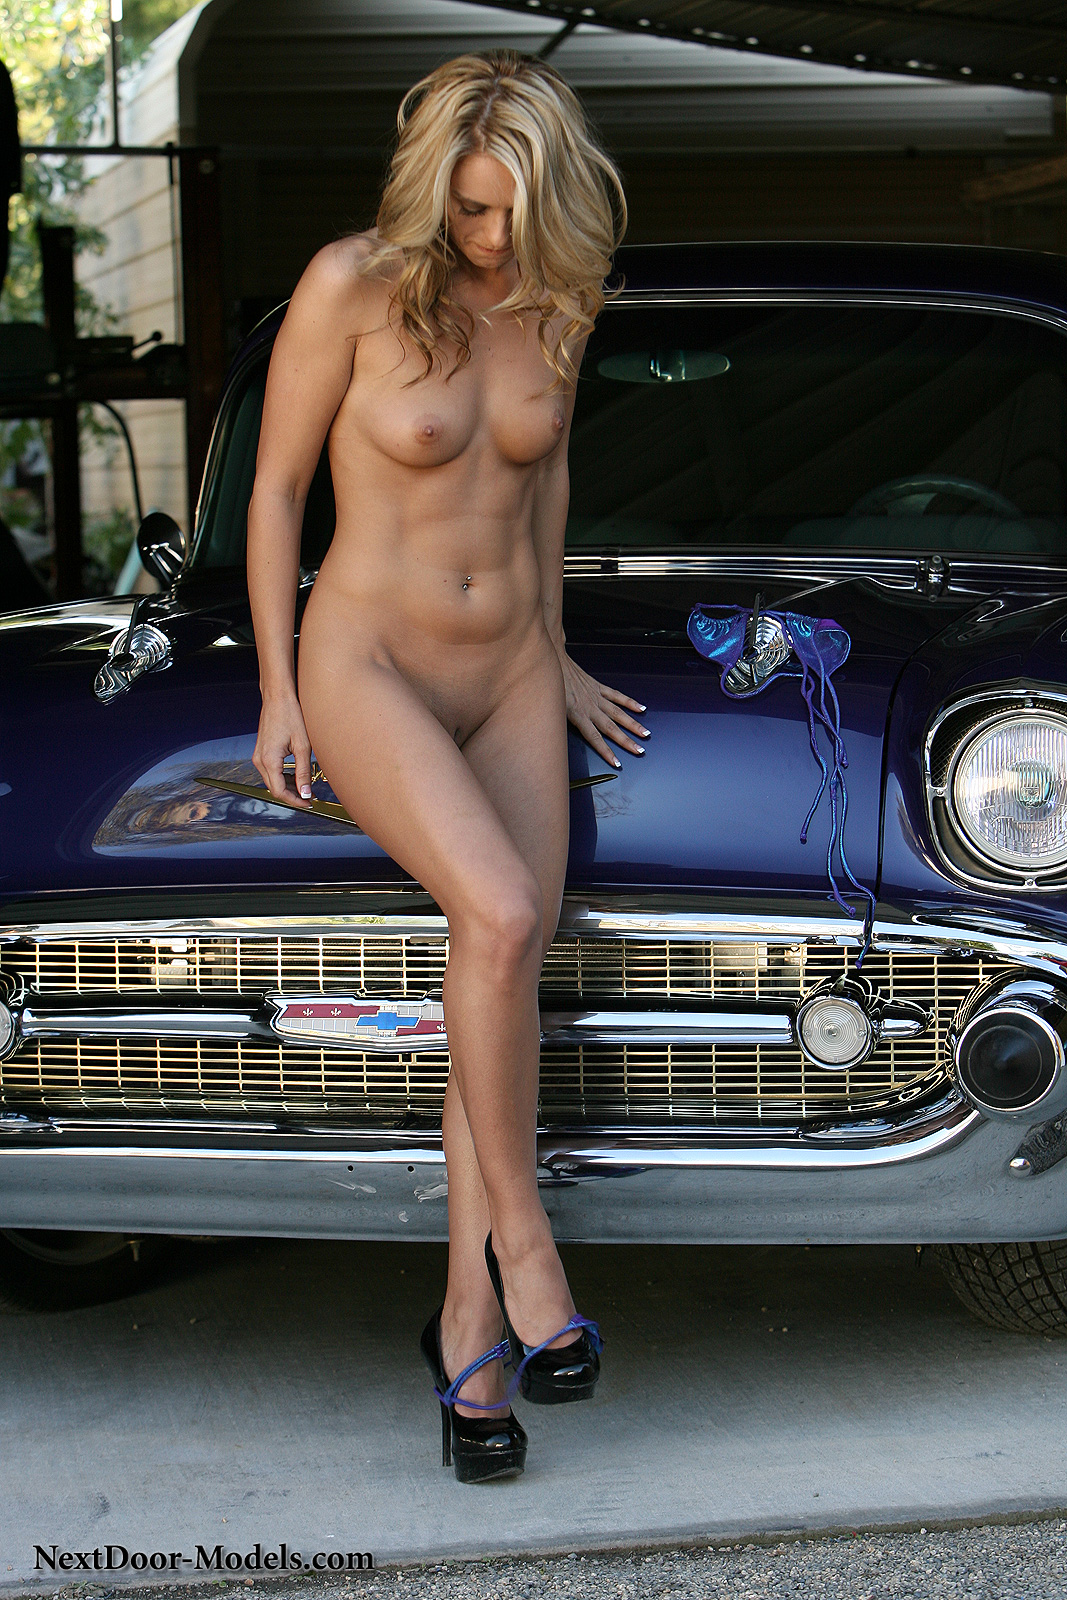 Hot blonde naked in the car